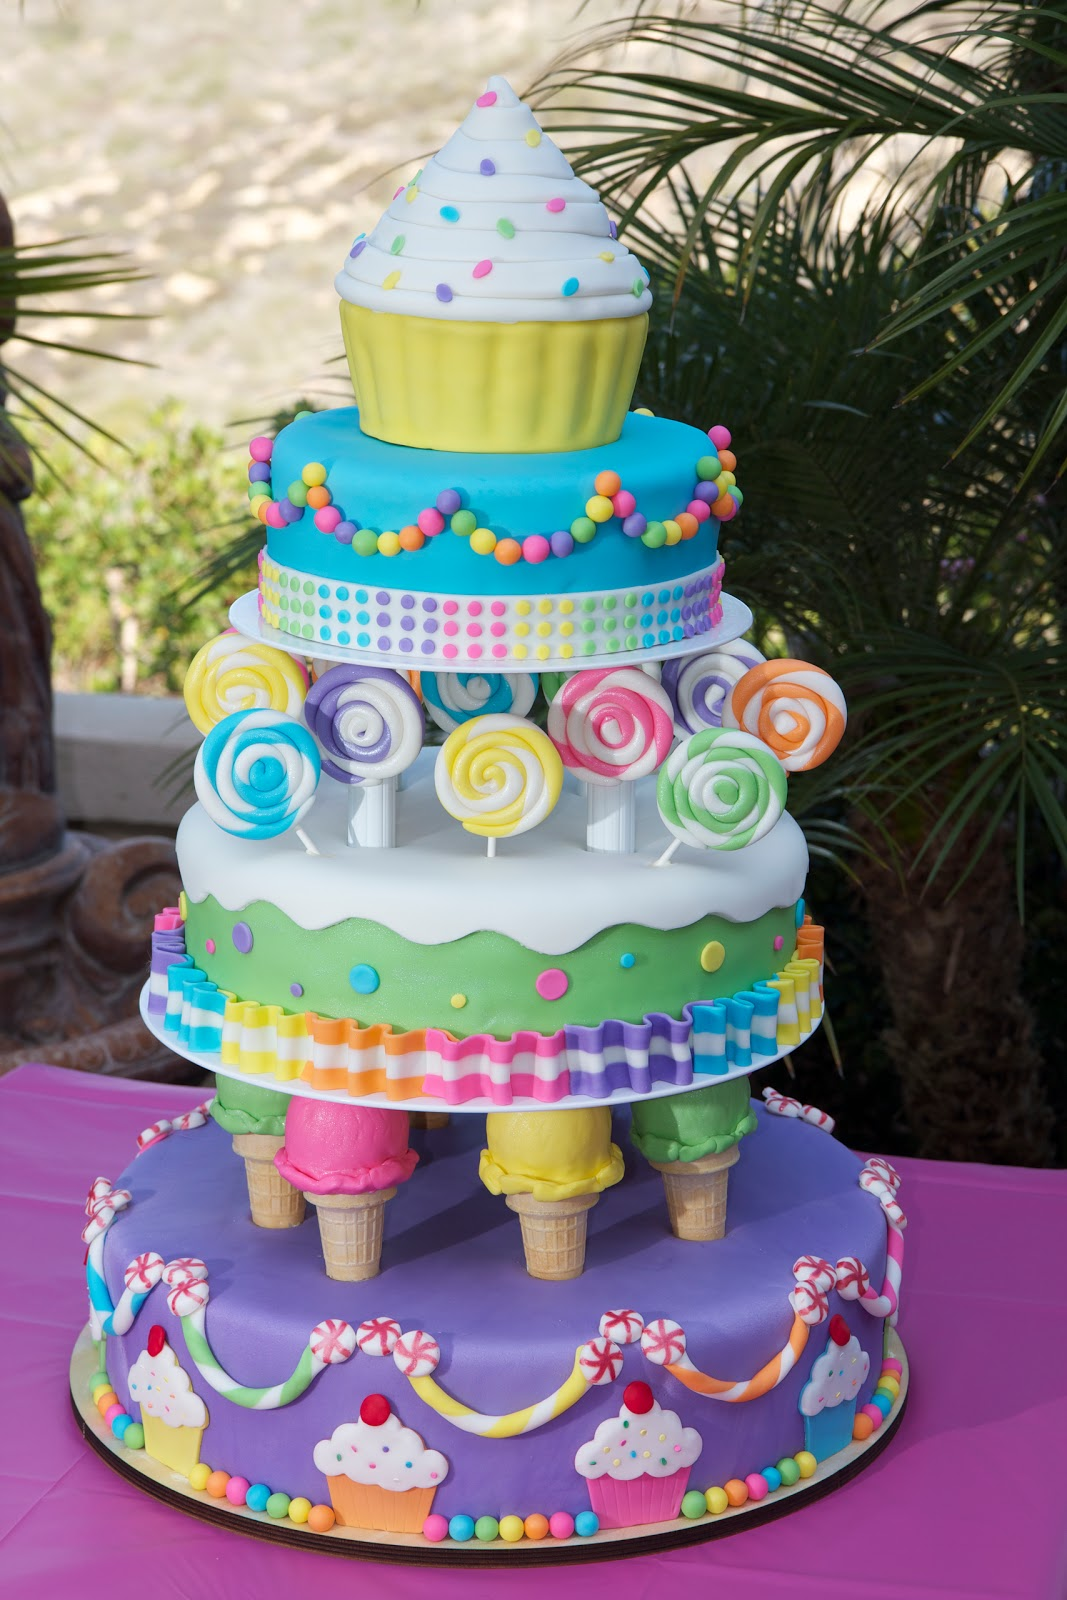 Kaylynn Cakes Large Candyland Themed Birthday Cake